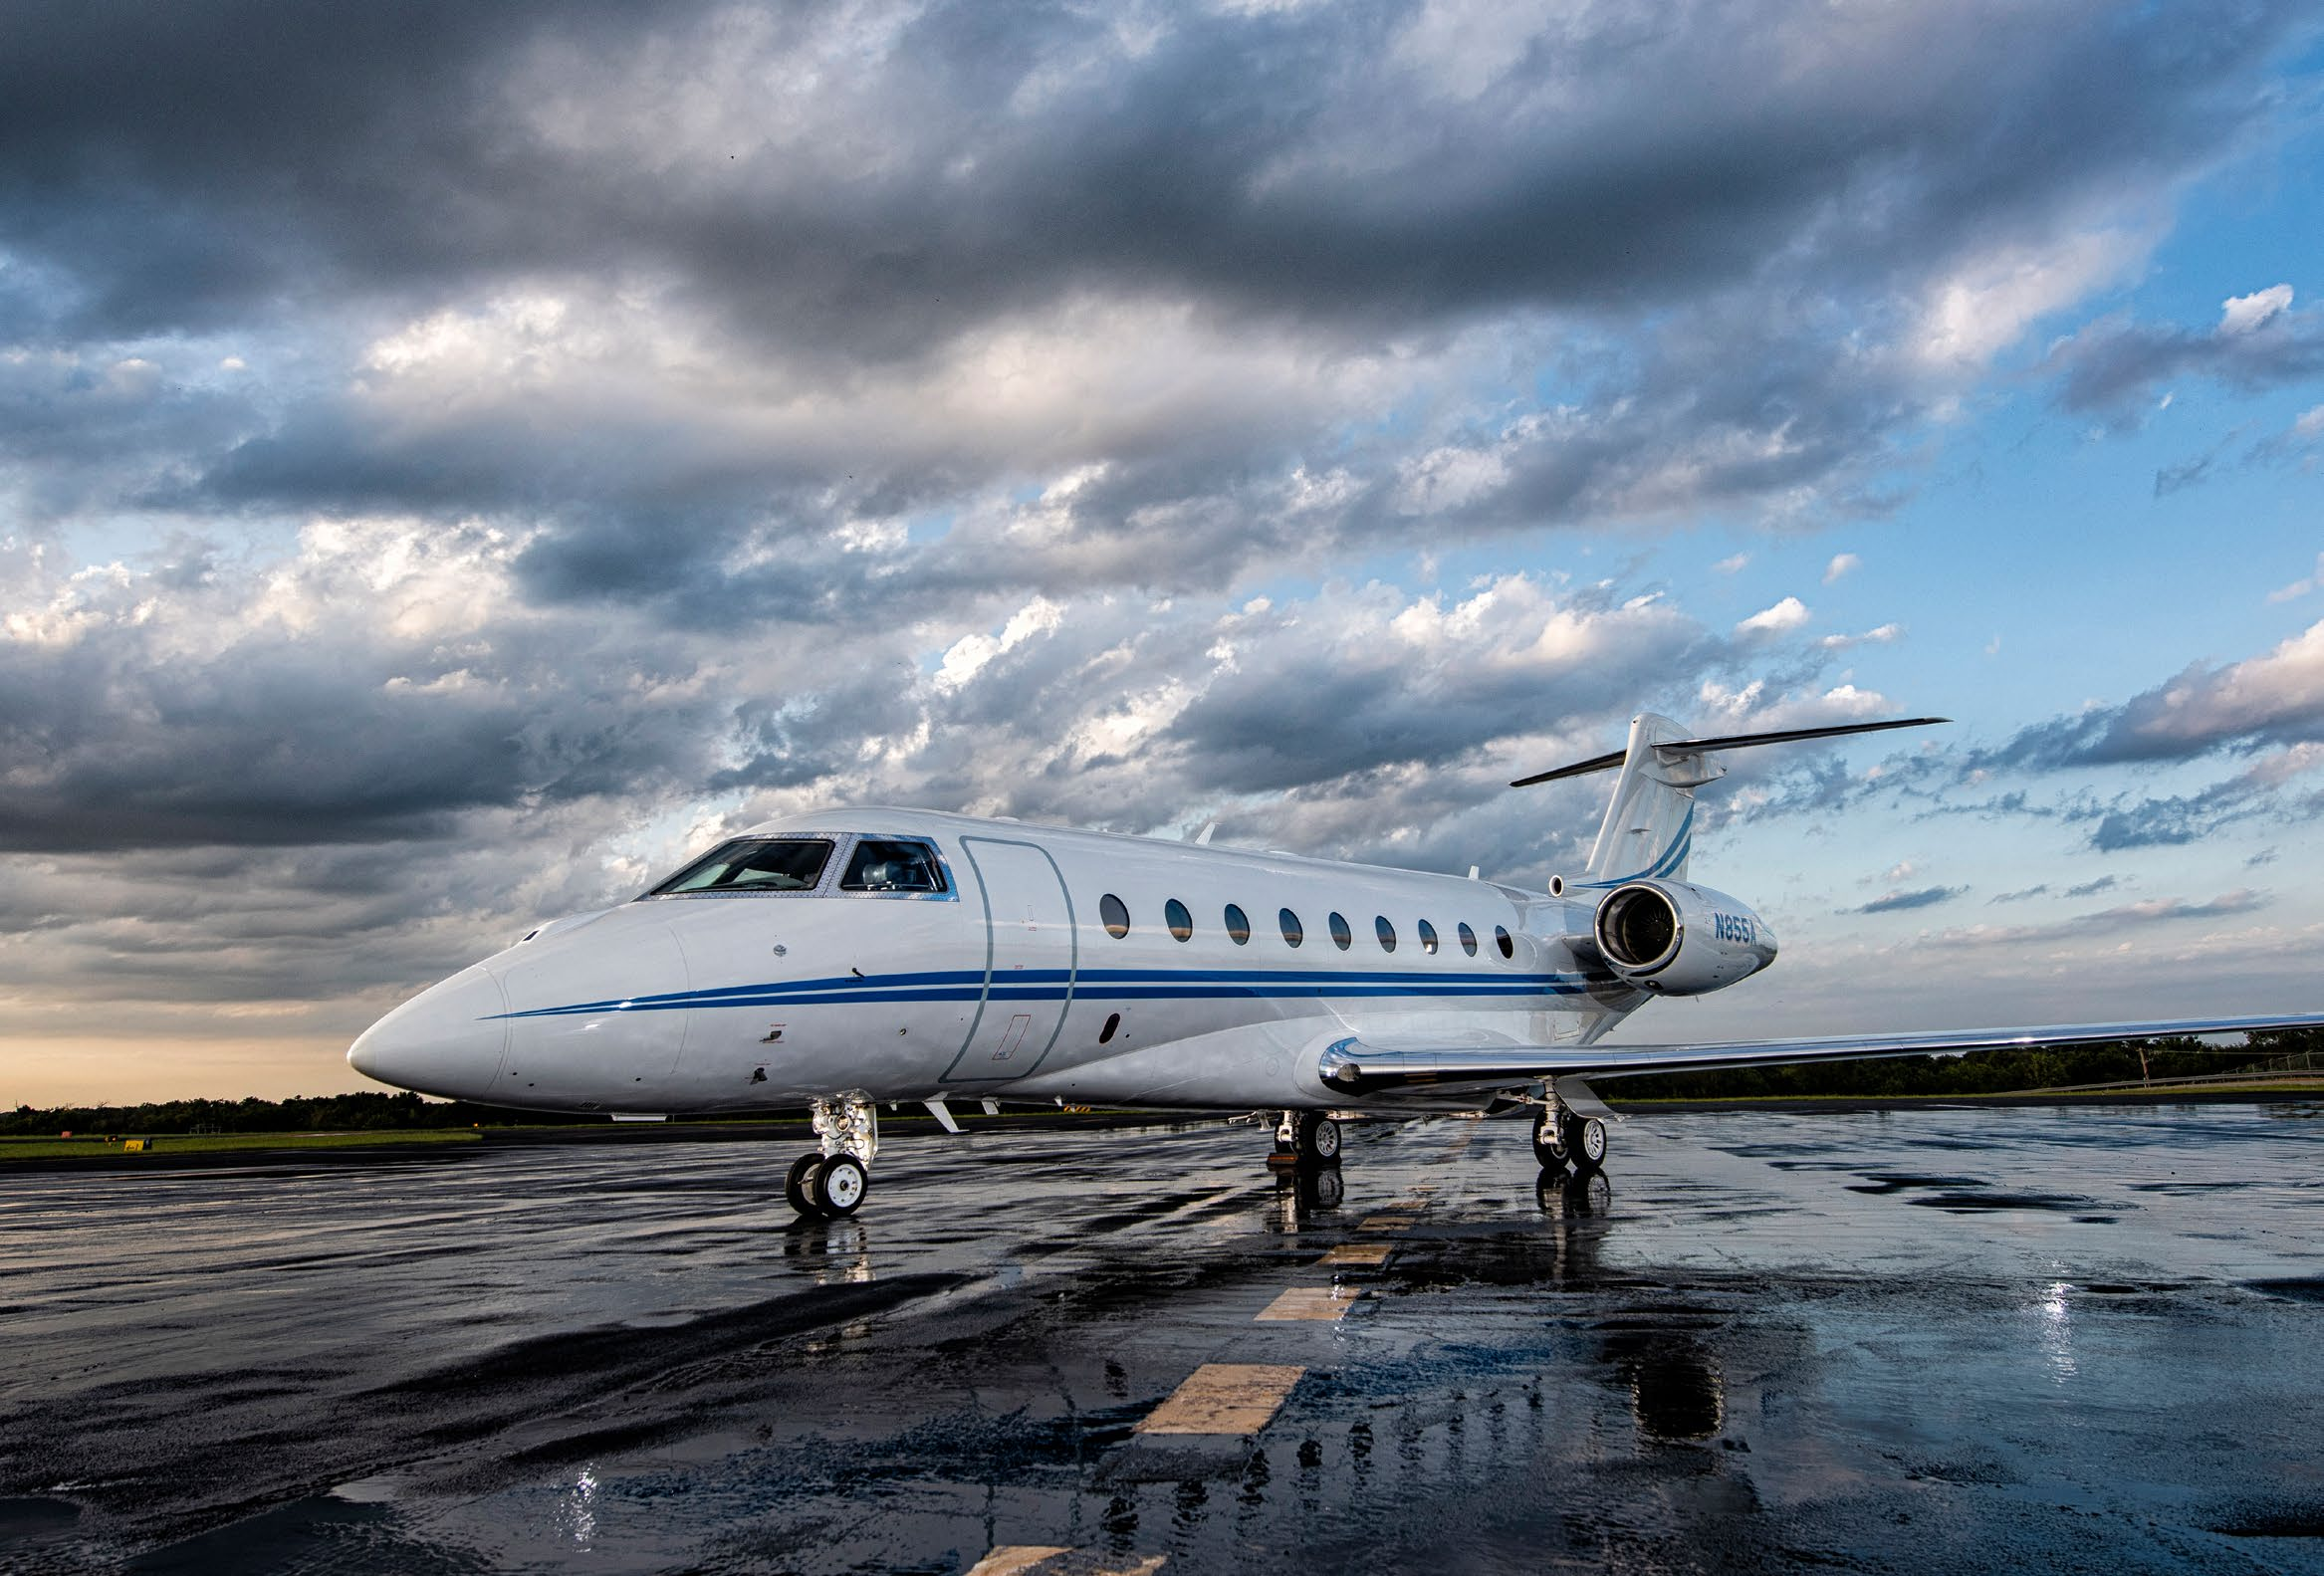 Aircraft Listing - Gulfstream G280 listed for sale